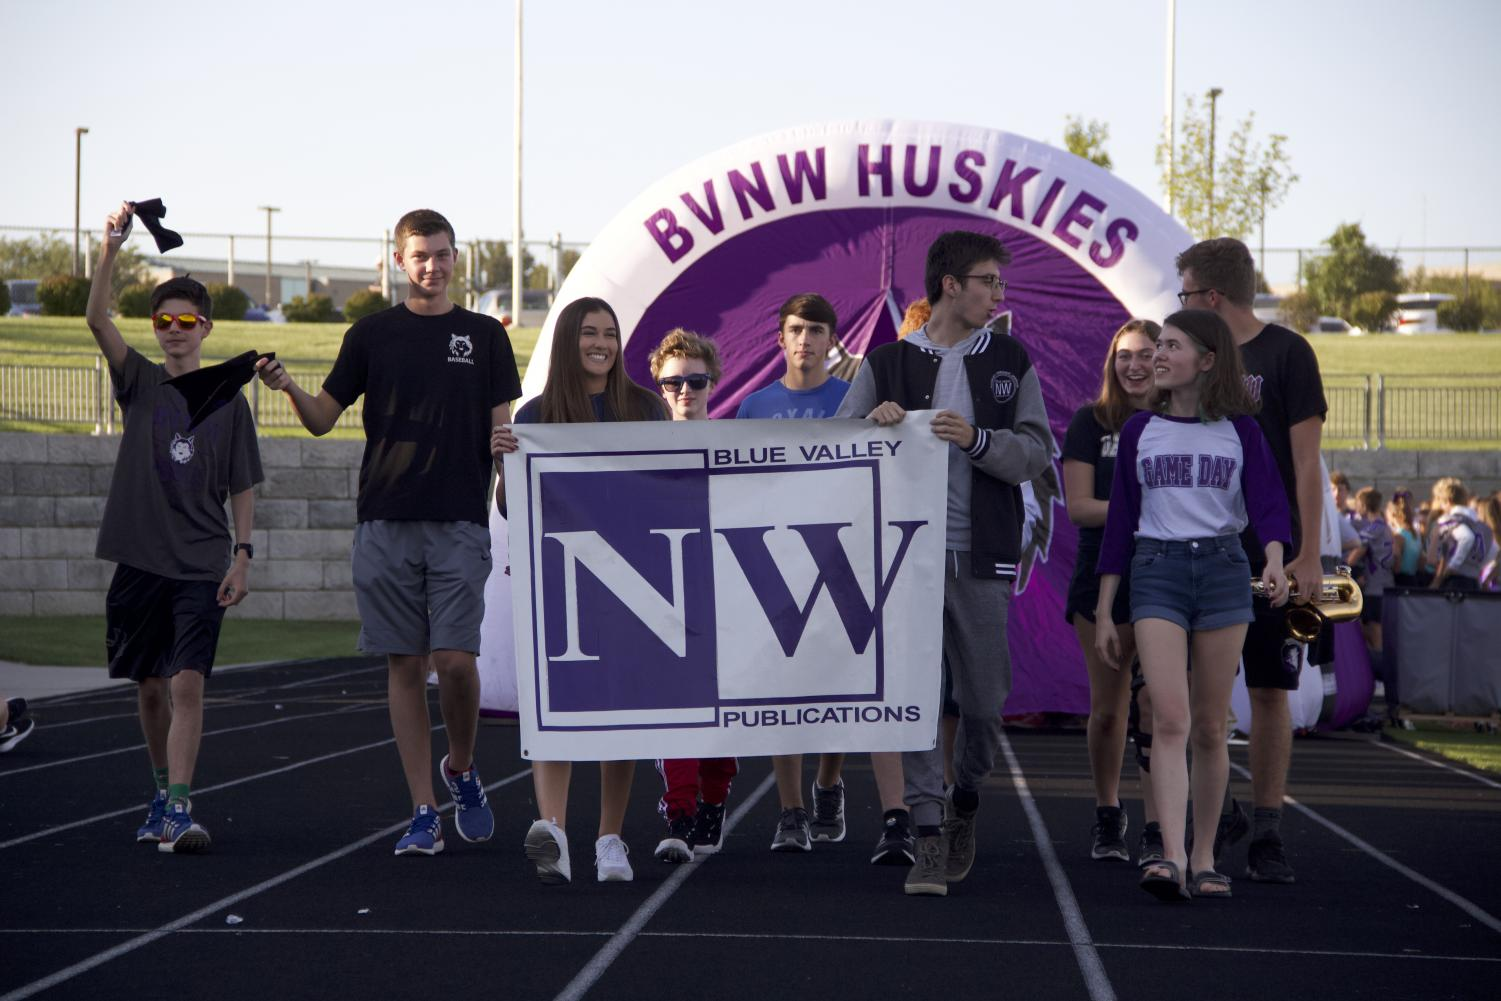 The+Husky+Headline+broadcast+staff+carries+their+poster+as+they+walk+across+the+track+on+Husky+Night.+